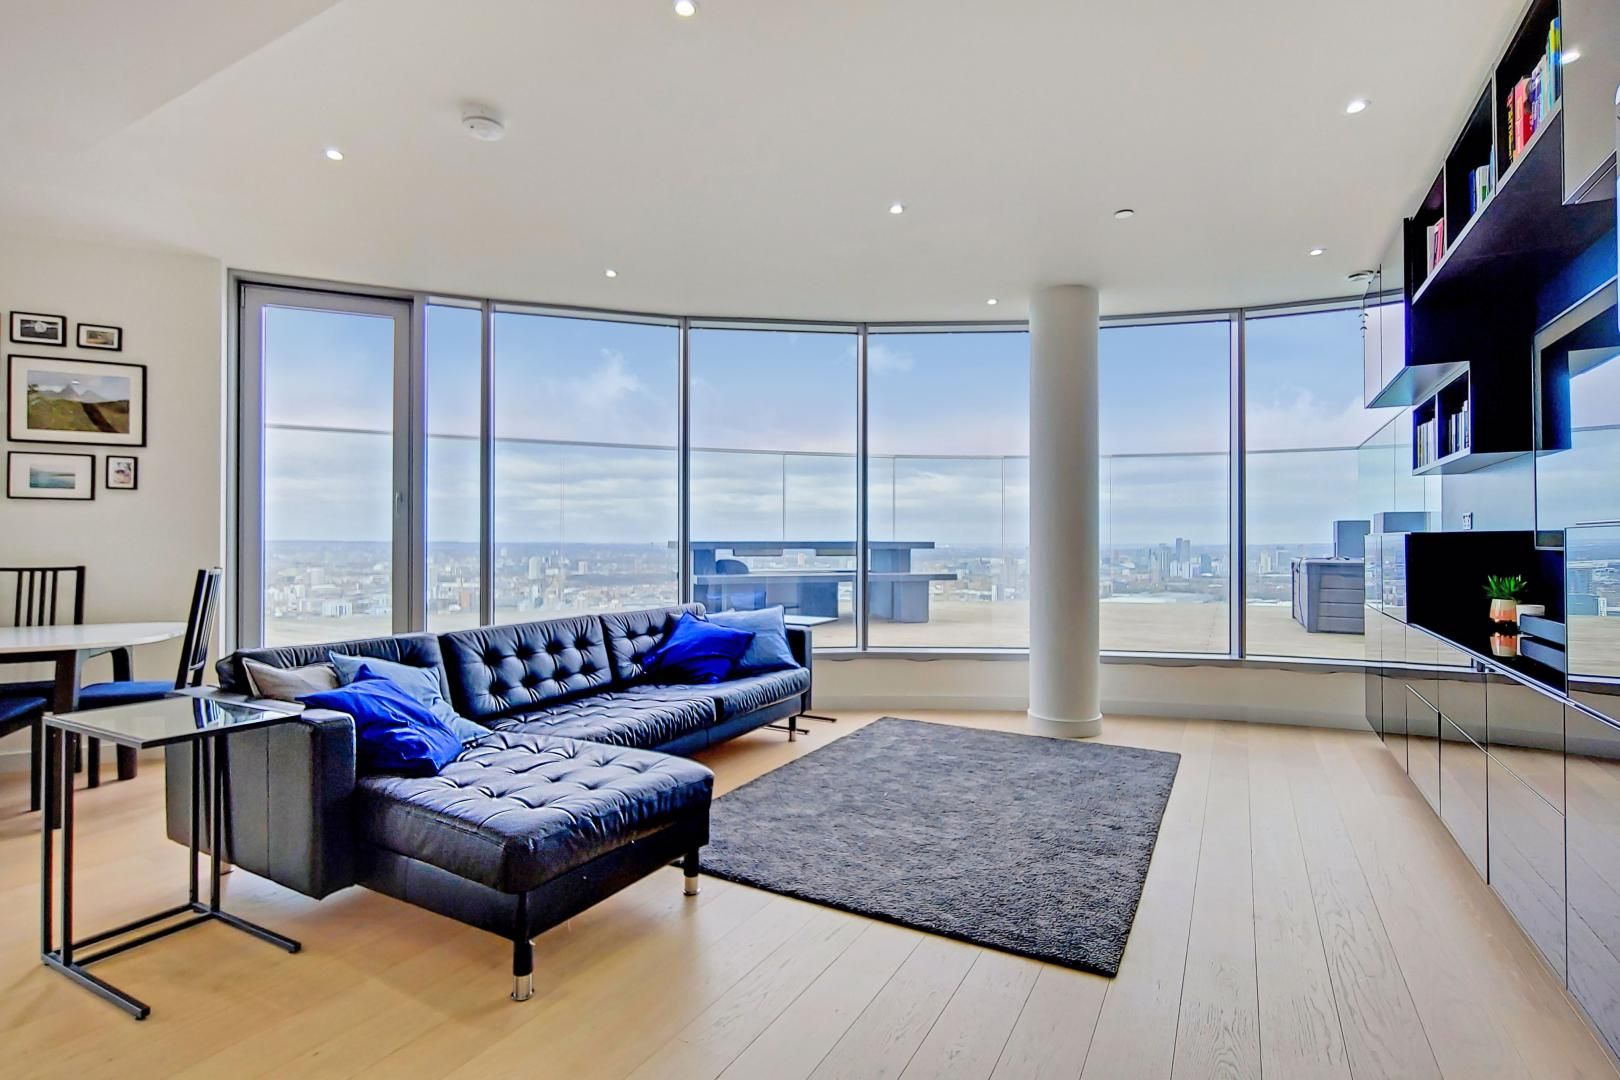 2 bed flat for sale in Charrington Tower, E14